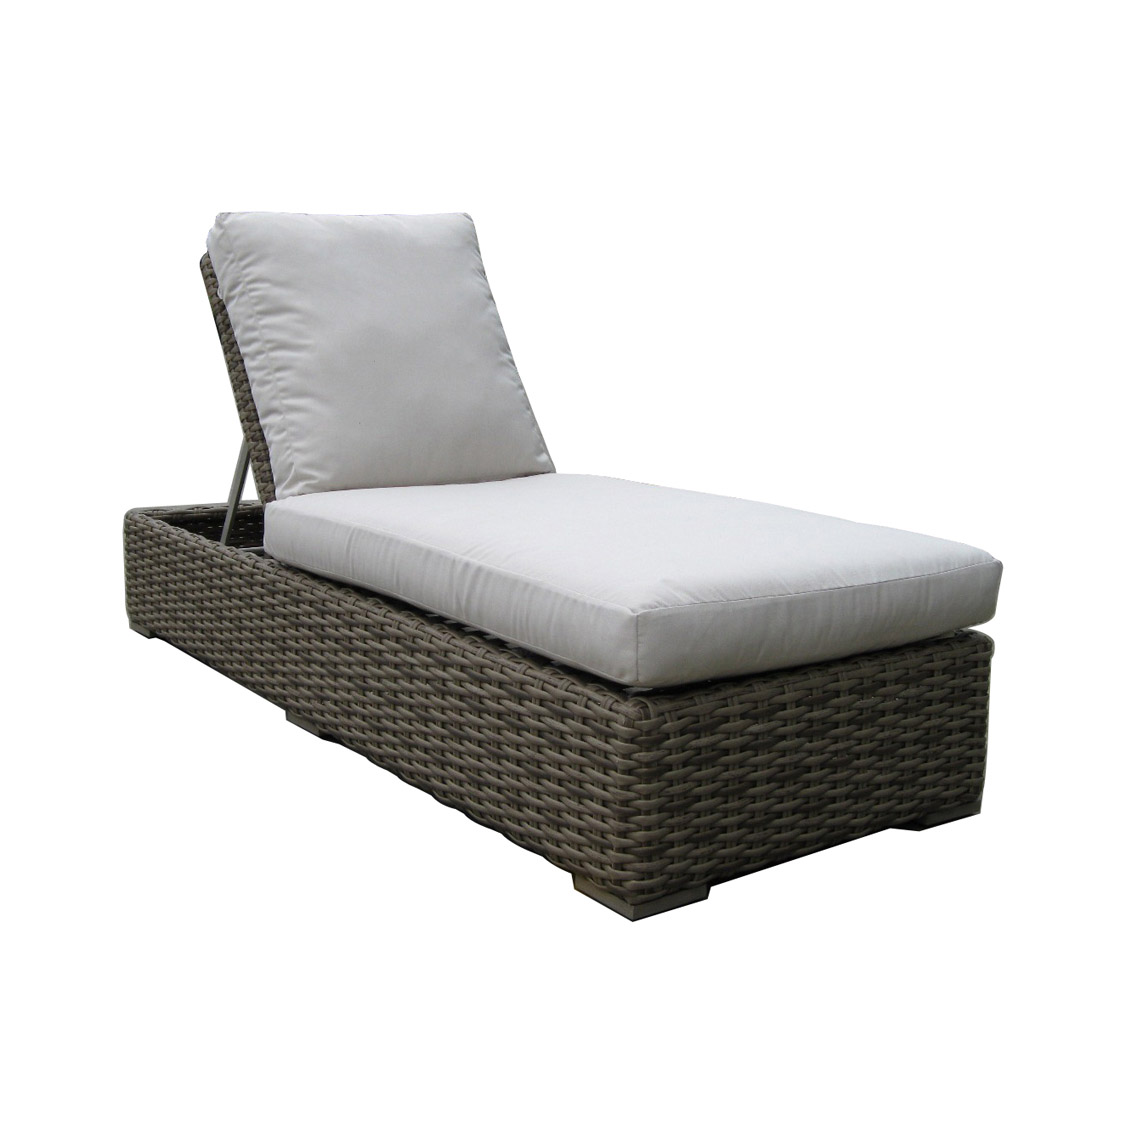 957152 Sorrento Single Adjustable Chaise.jpg